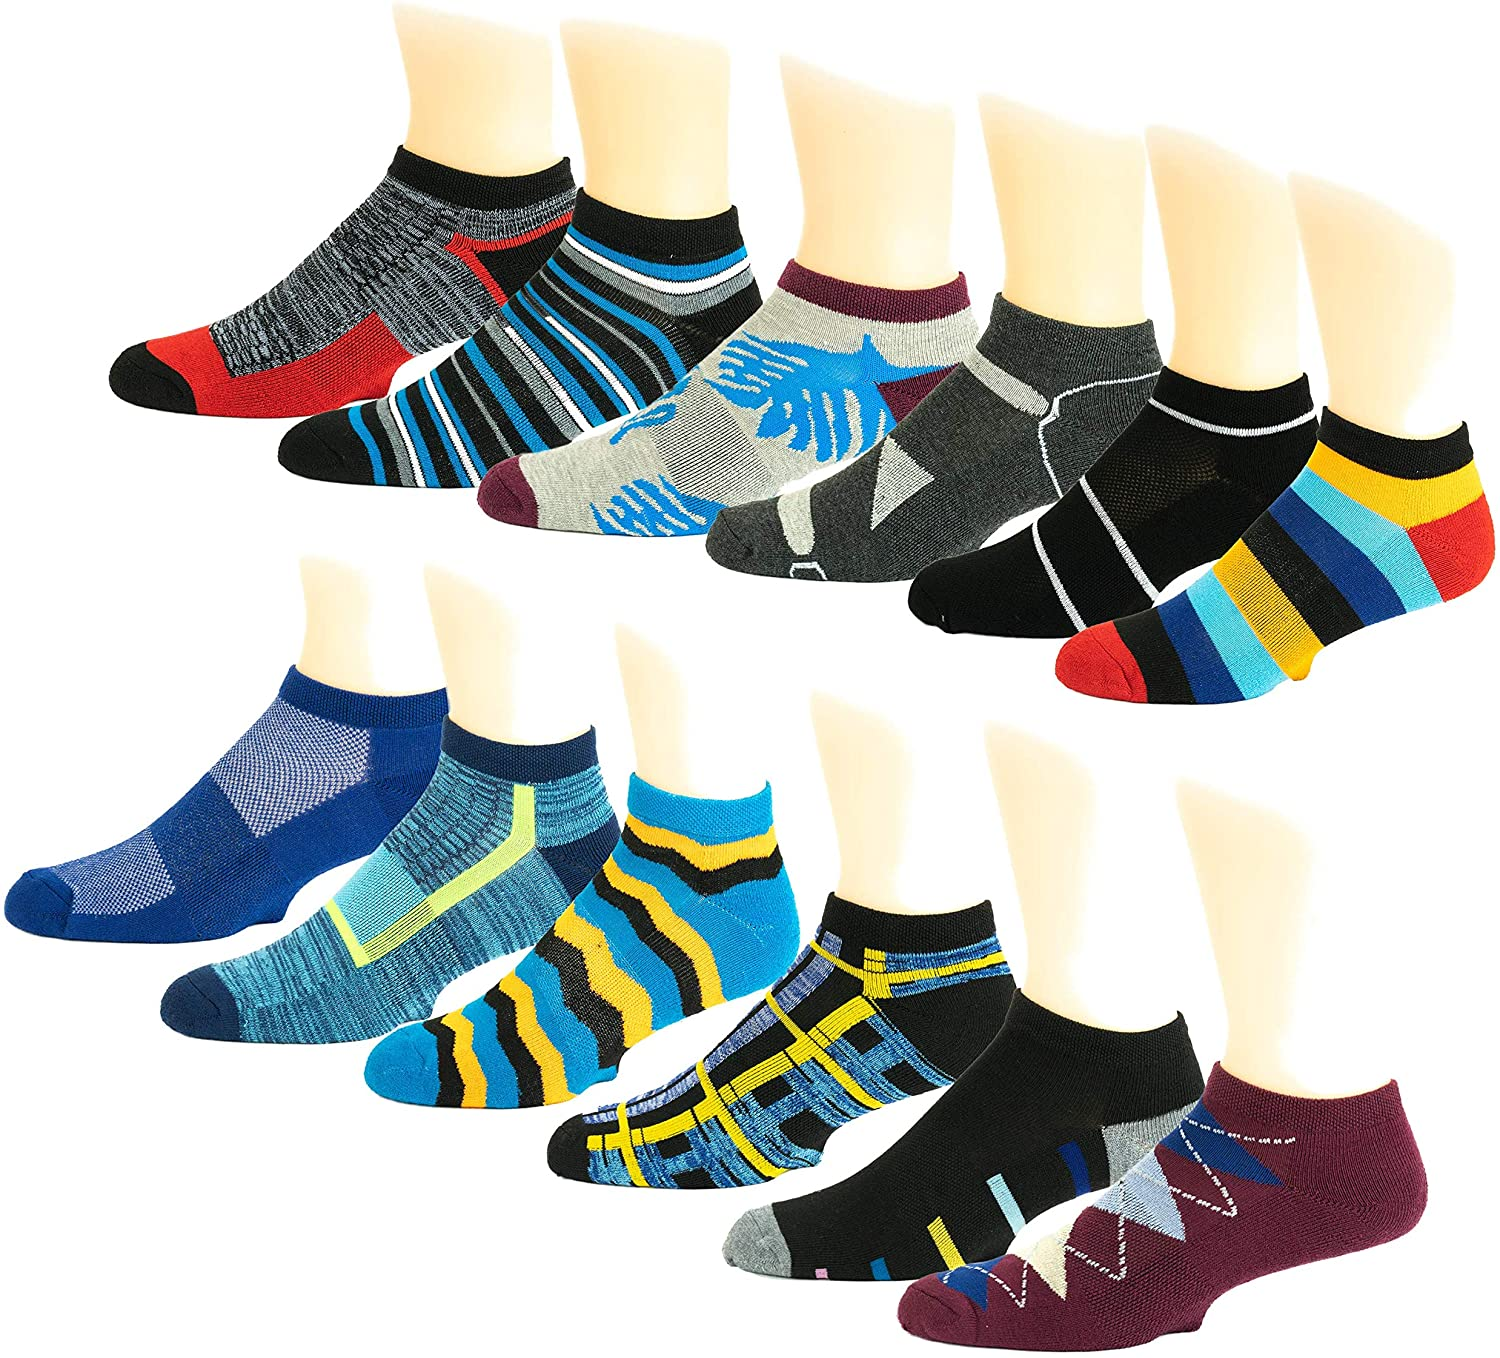 12 Pairs Mens Low Cut Sports Running Athletic Performance Socks